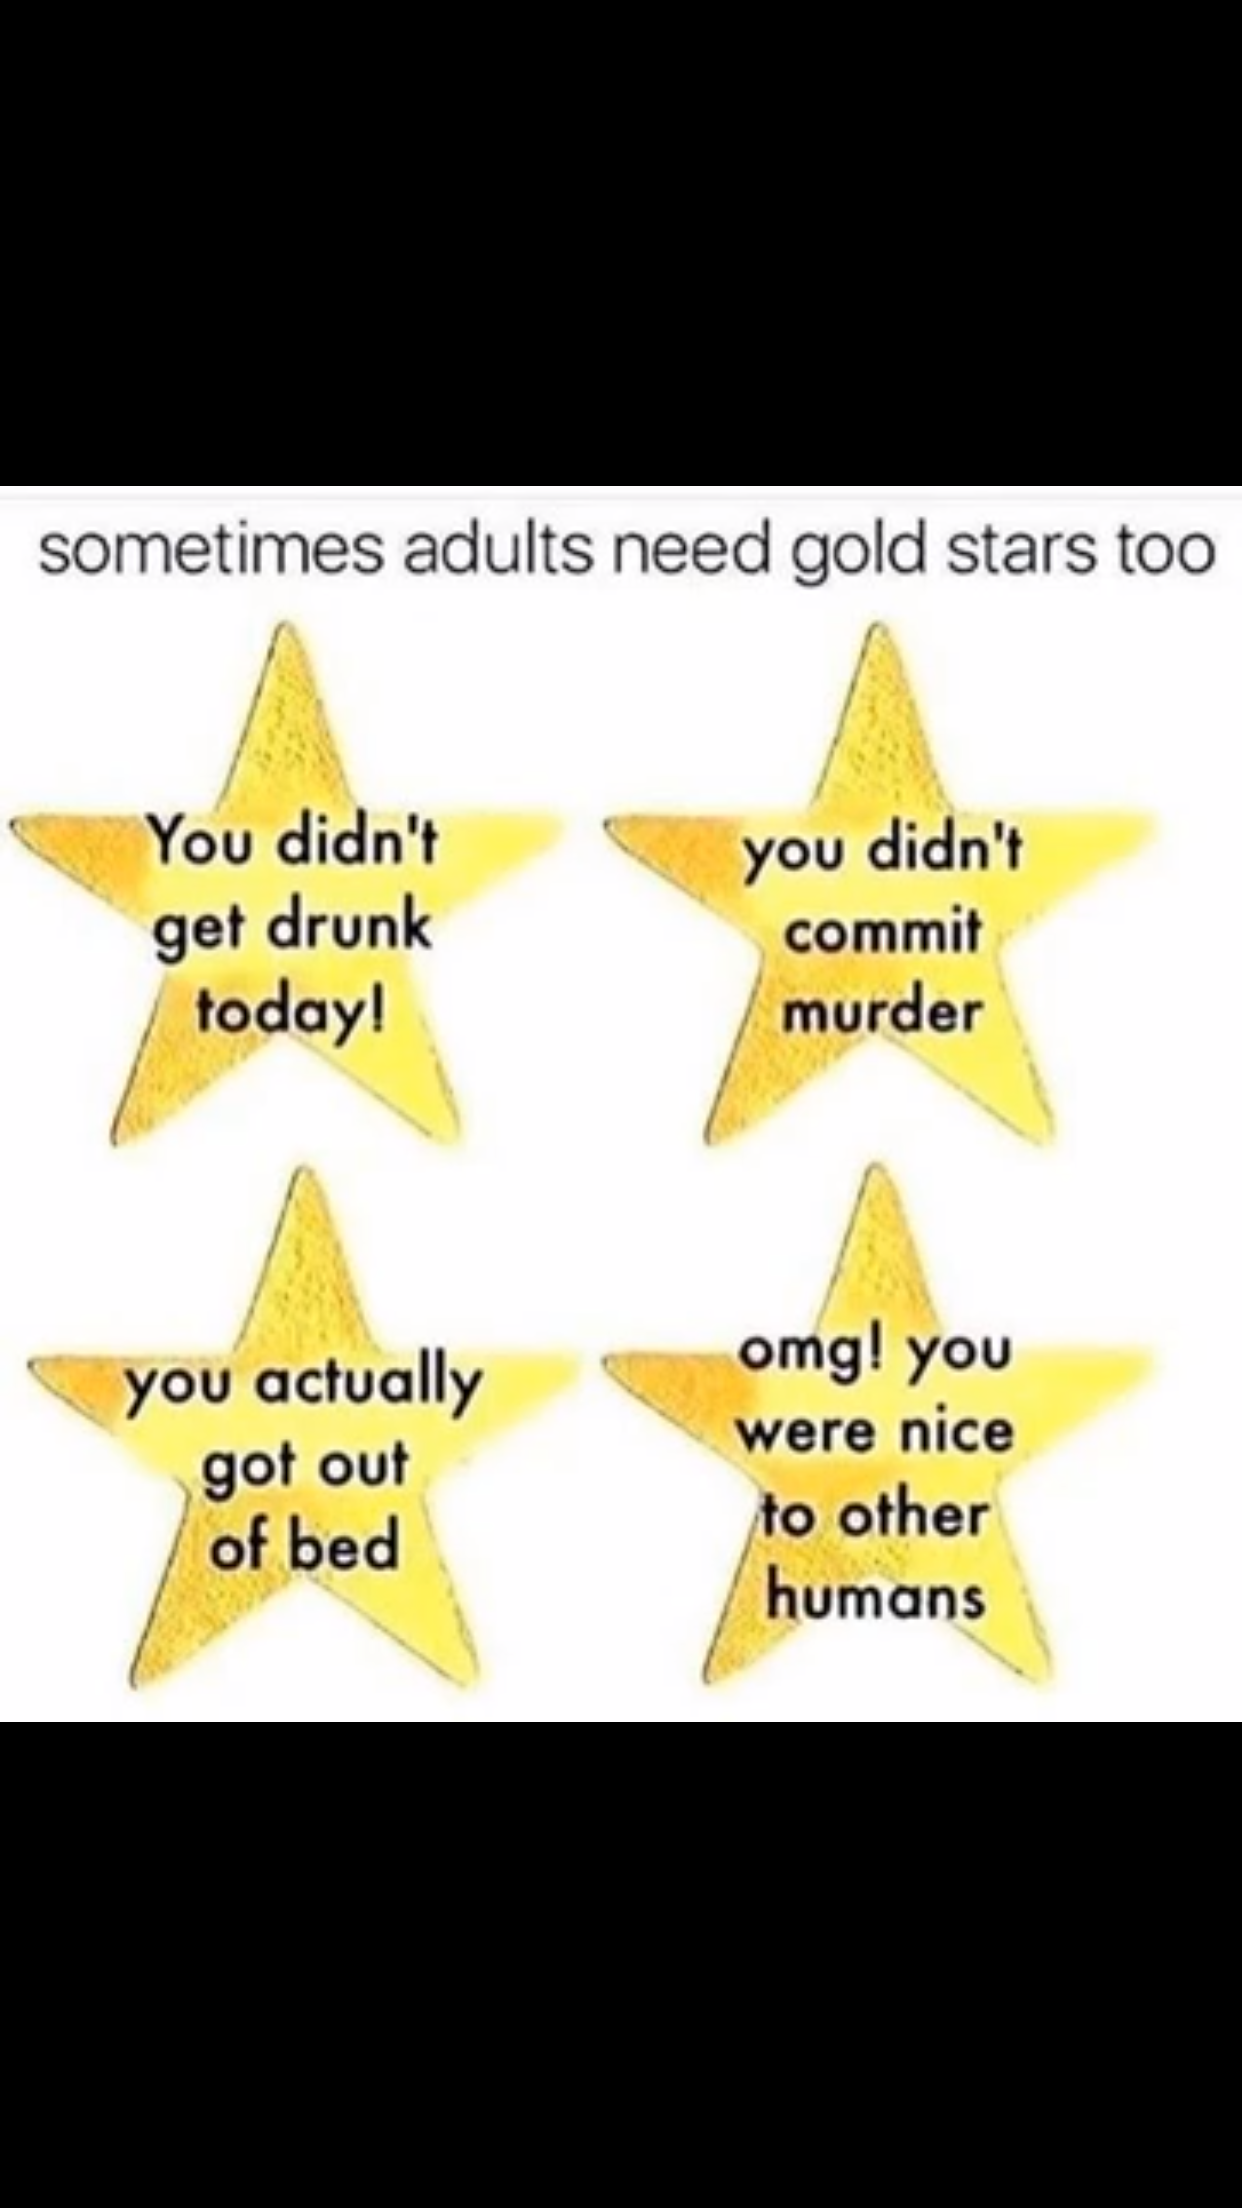 Pin by Cat Cordeiro on LOLZ Gold stars, Haha meme, Adult